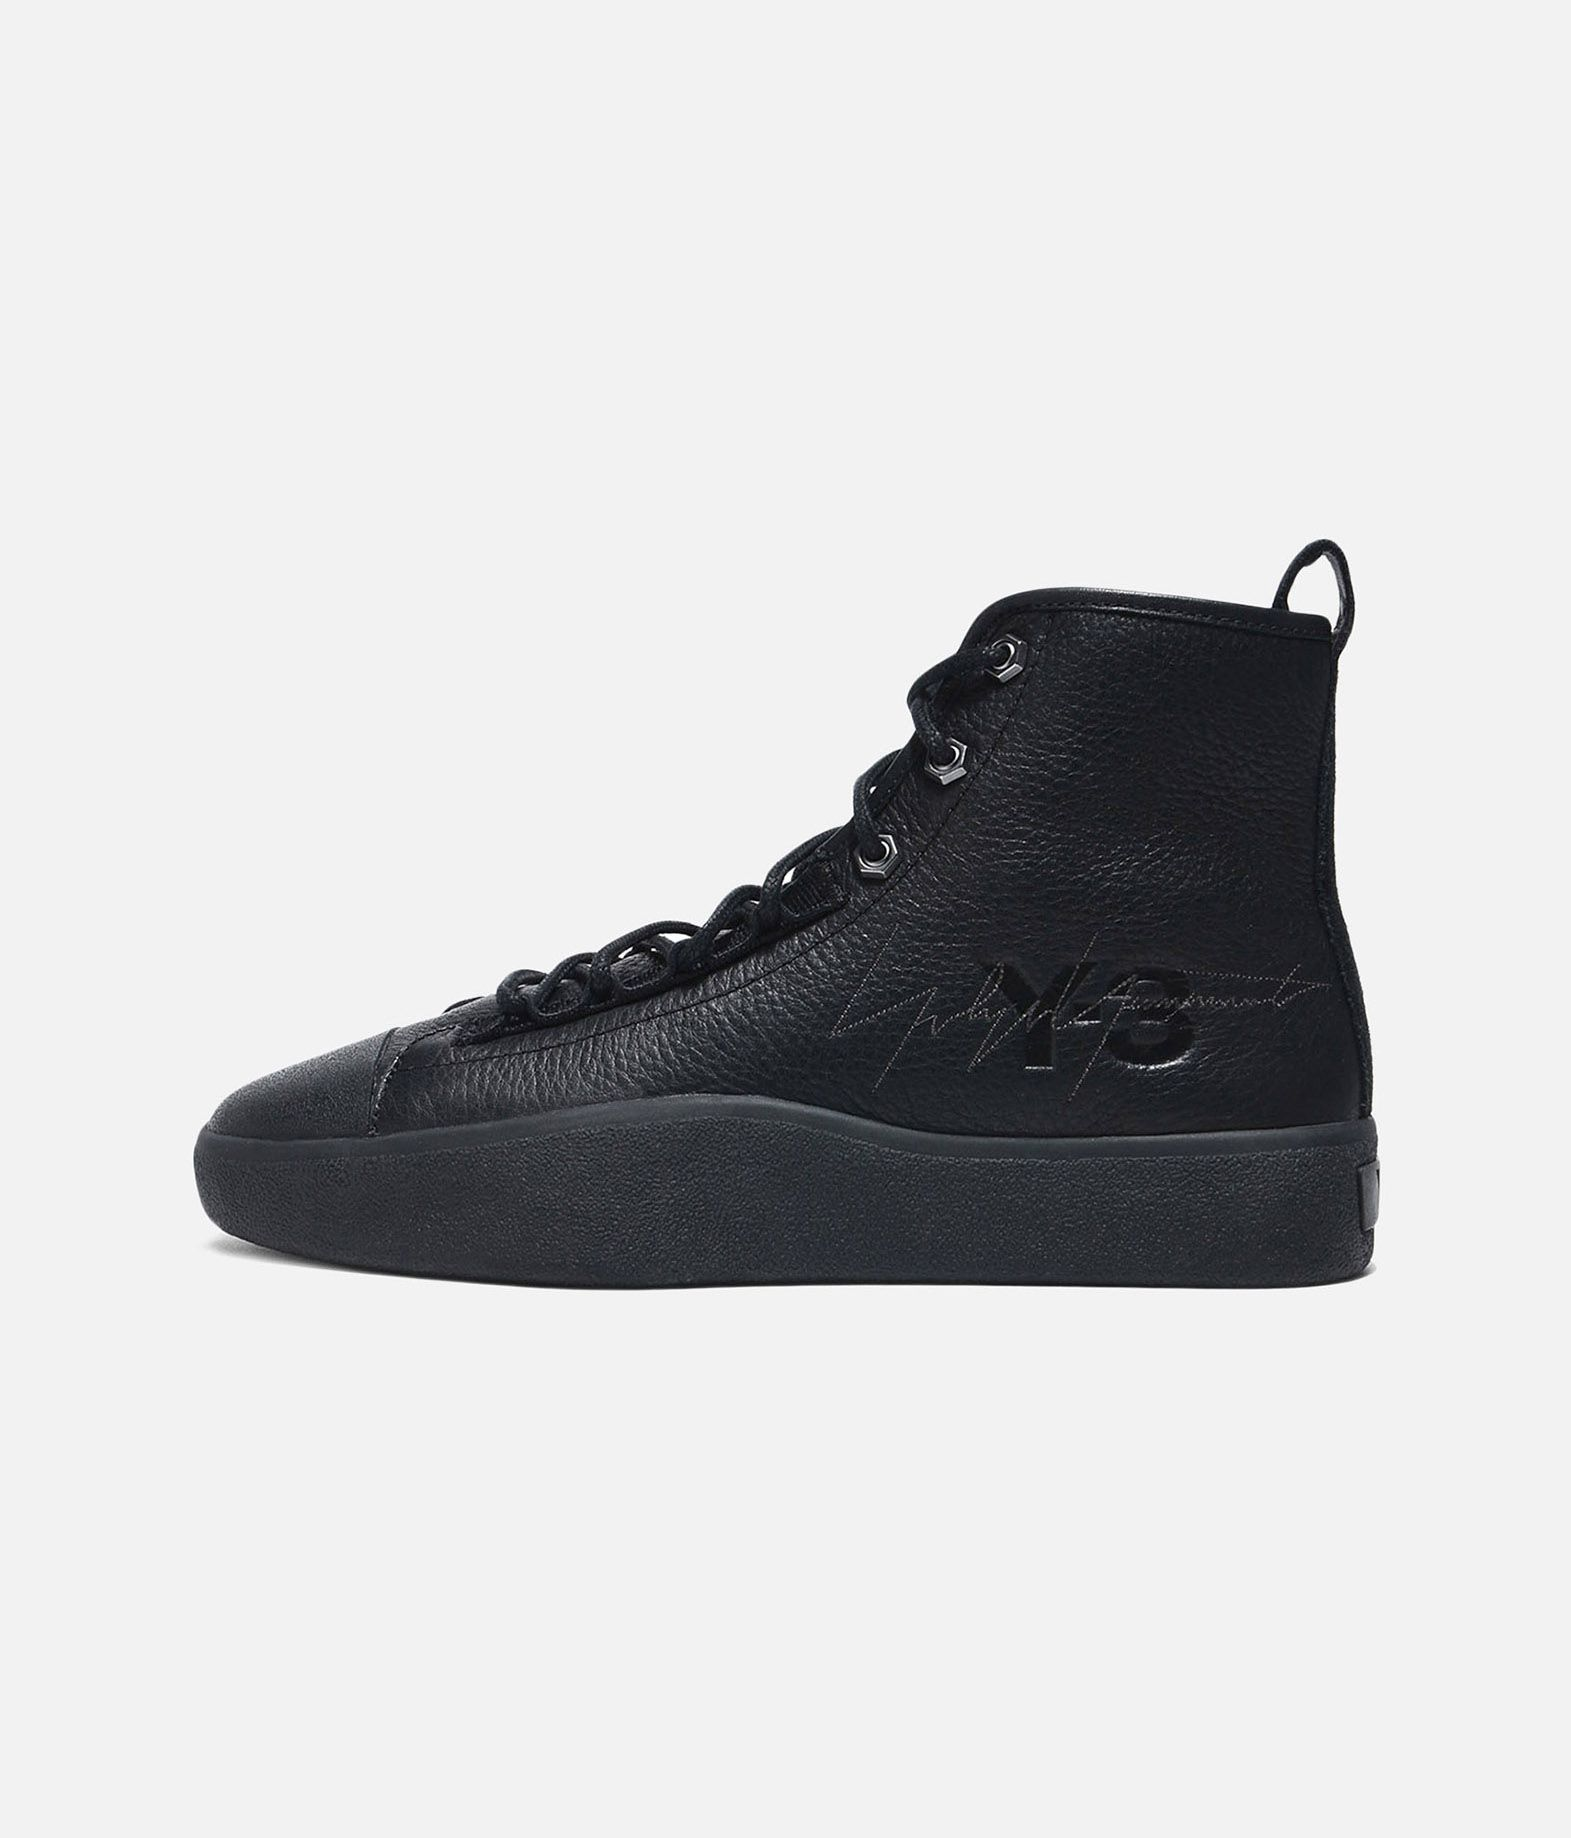 628a0a03f ... Y-3 Y-3 Bashyo II High-top sneakers E f ...